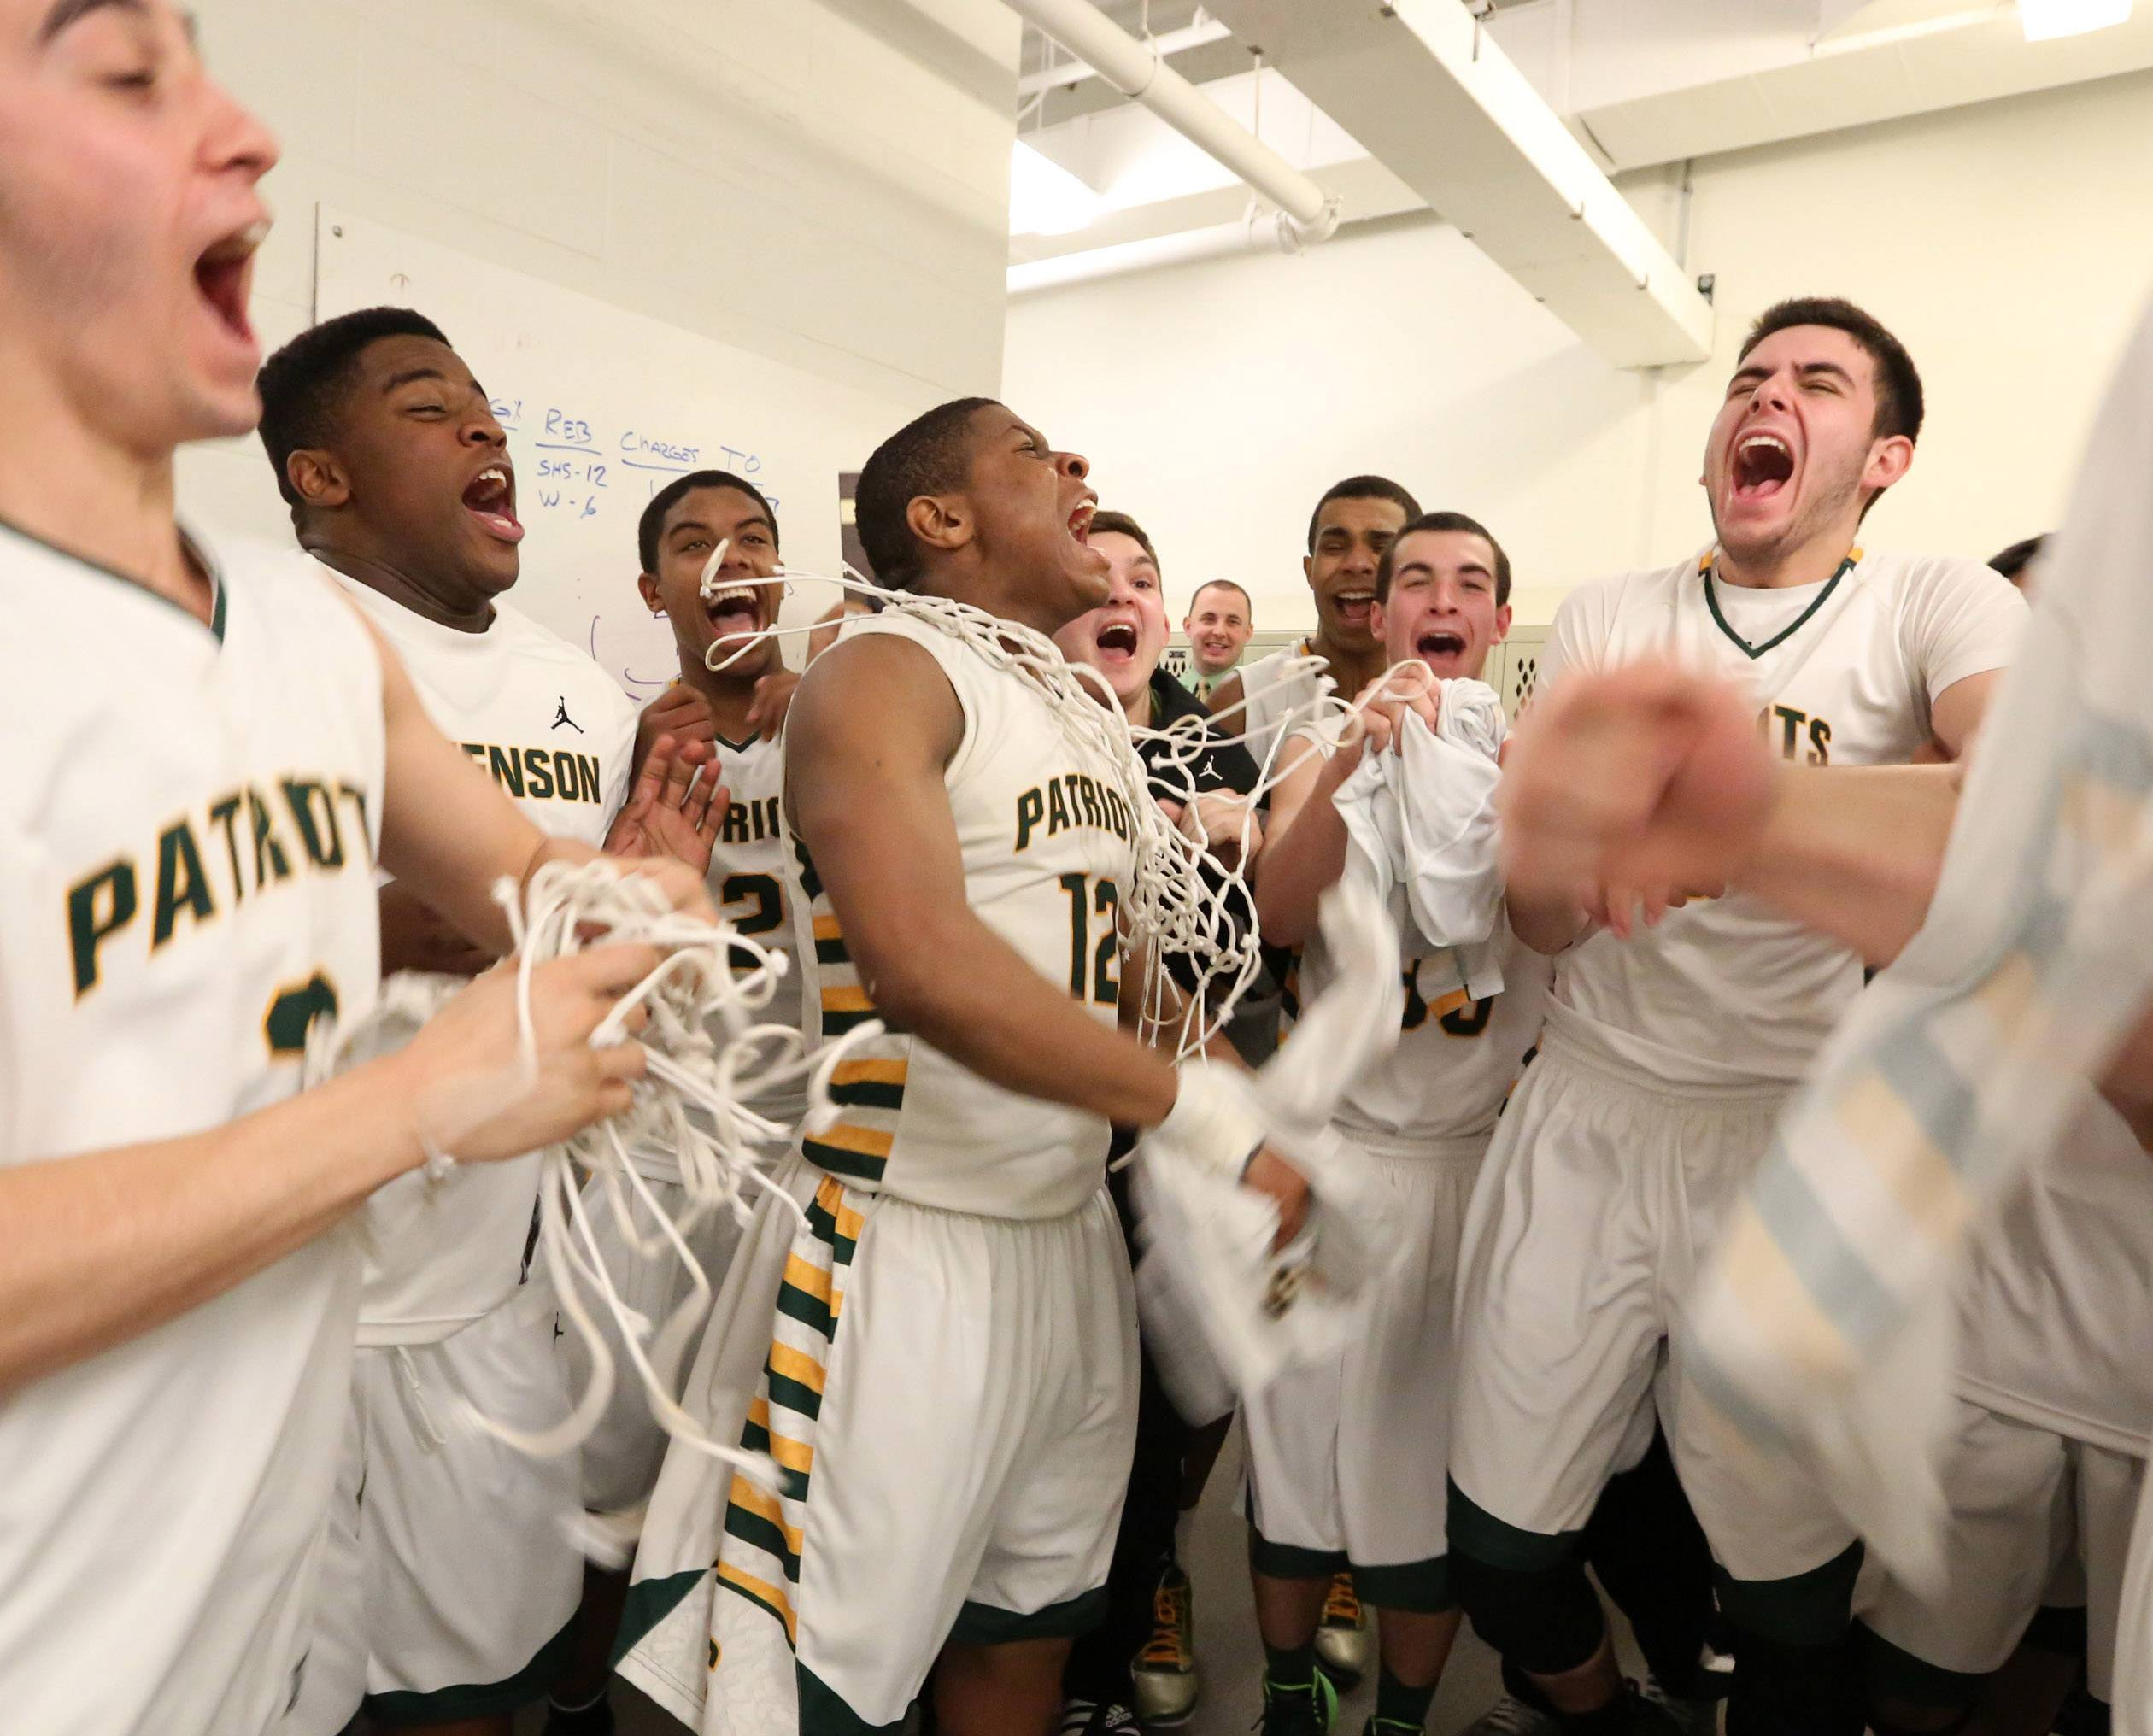 Stevenson players celebrate in the locker room after the game.